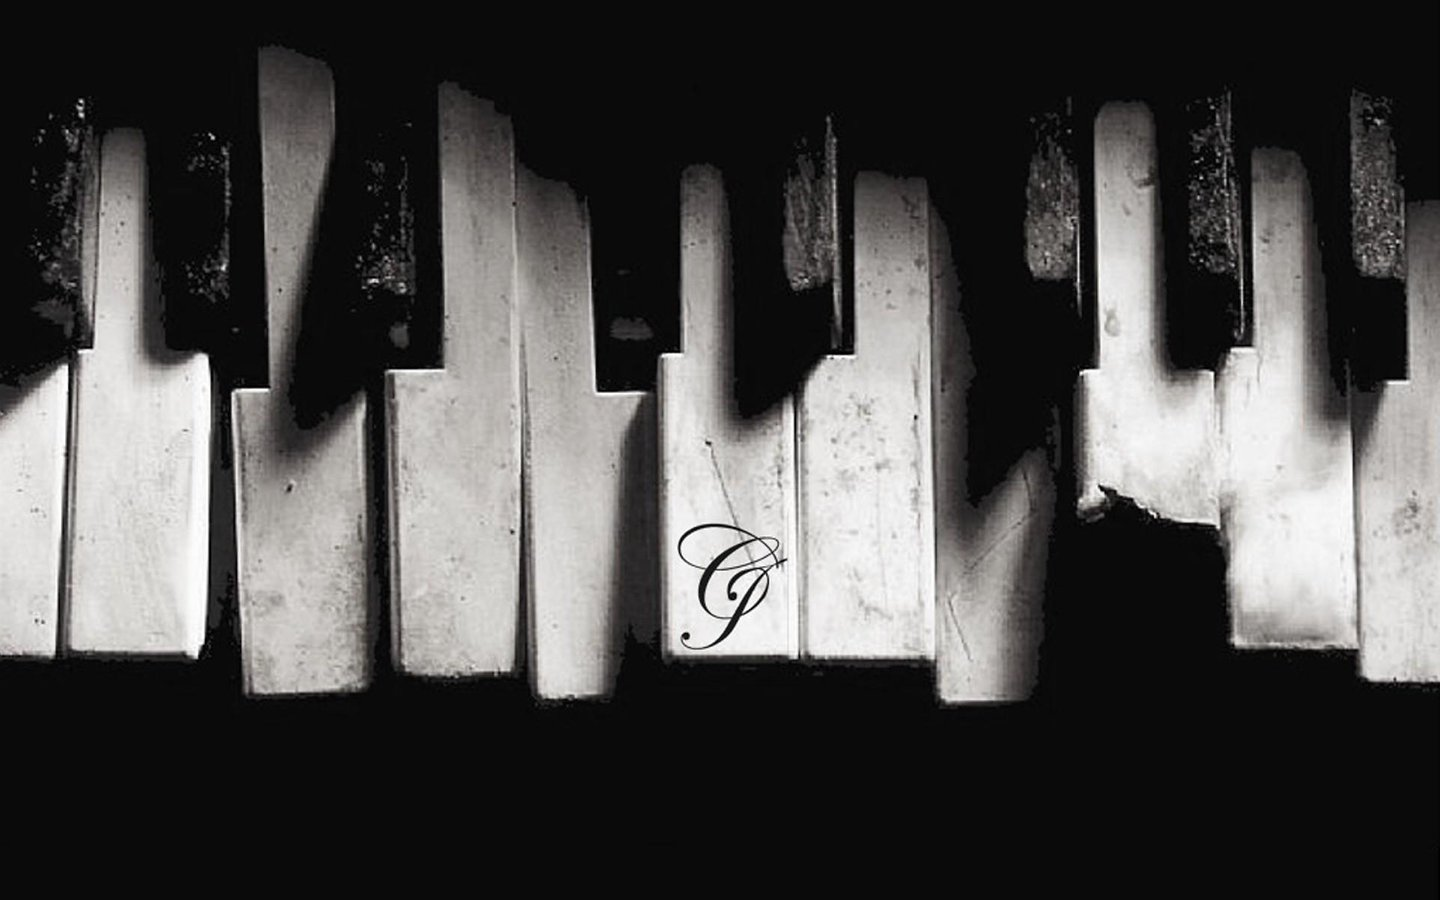 Piano Wallpaper   Android Apps und Tests   AndroidPIT 1440x900